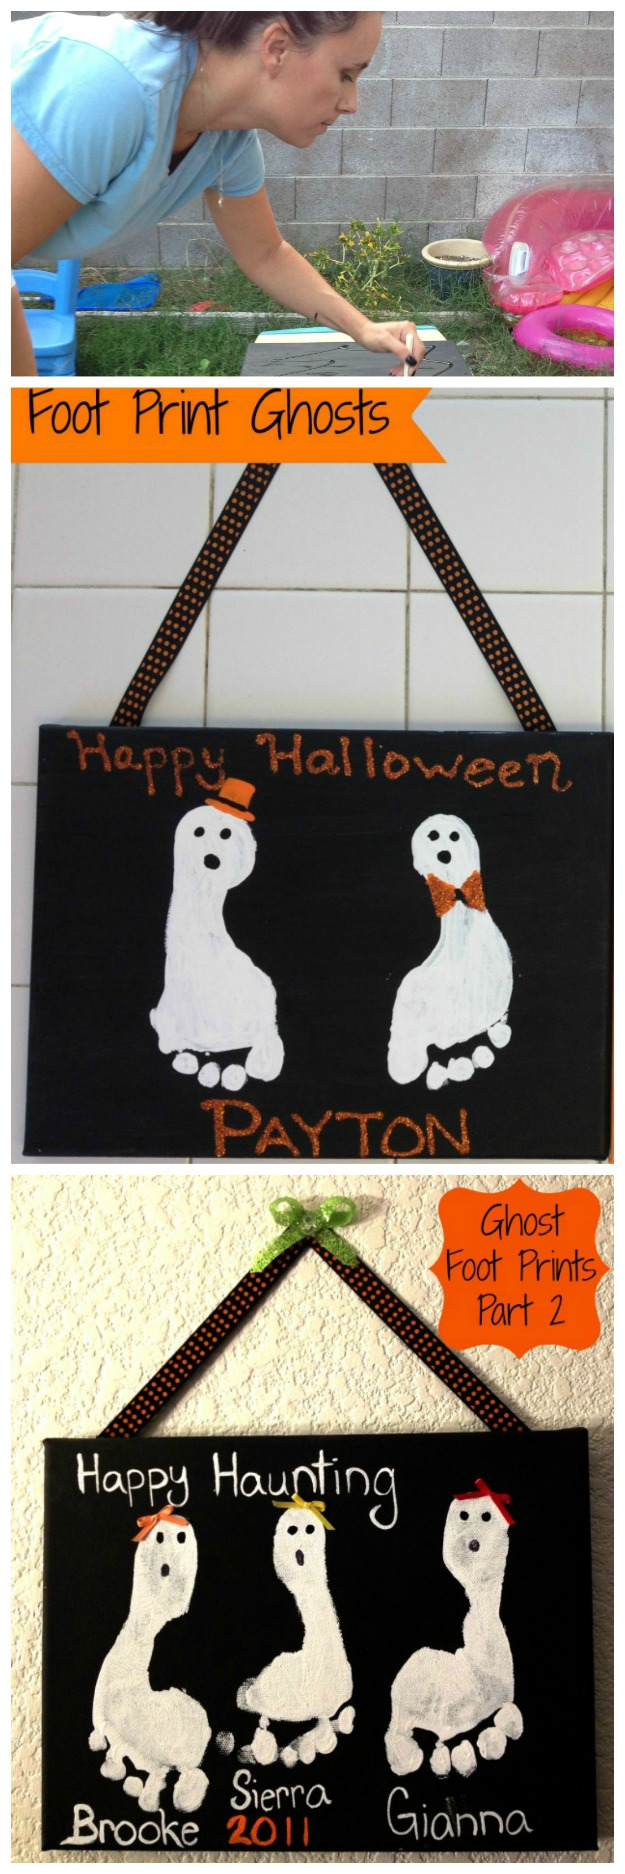 Halloween ghost foot print crafts for kids